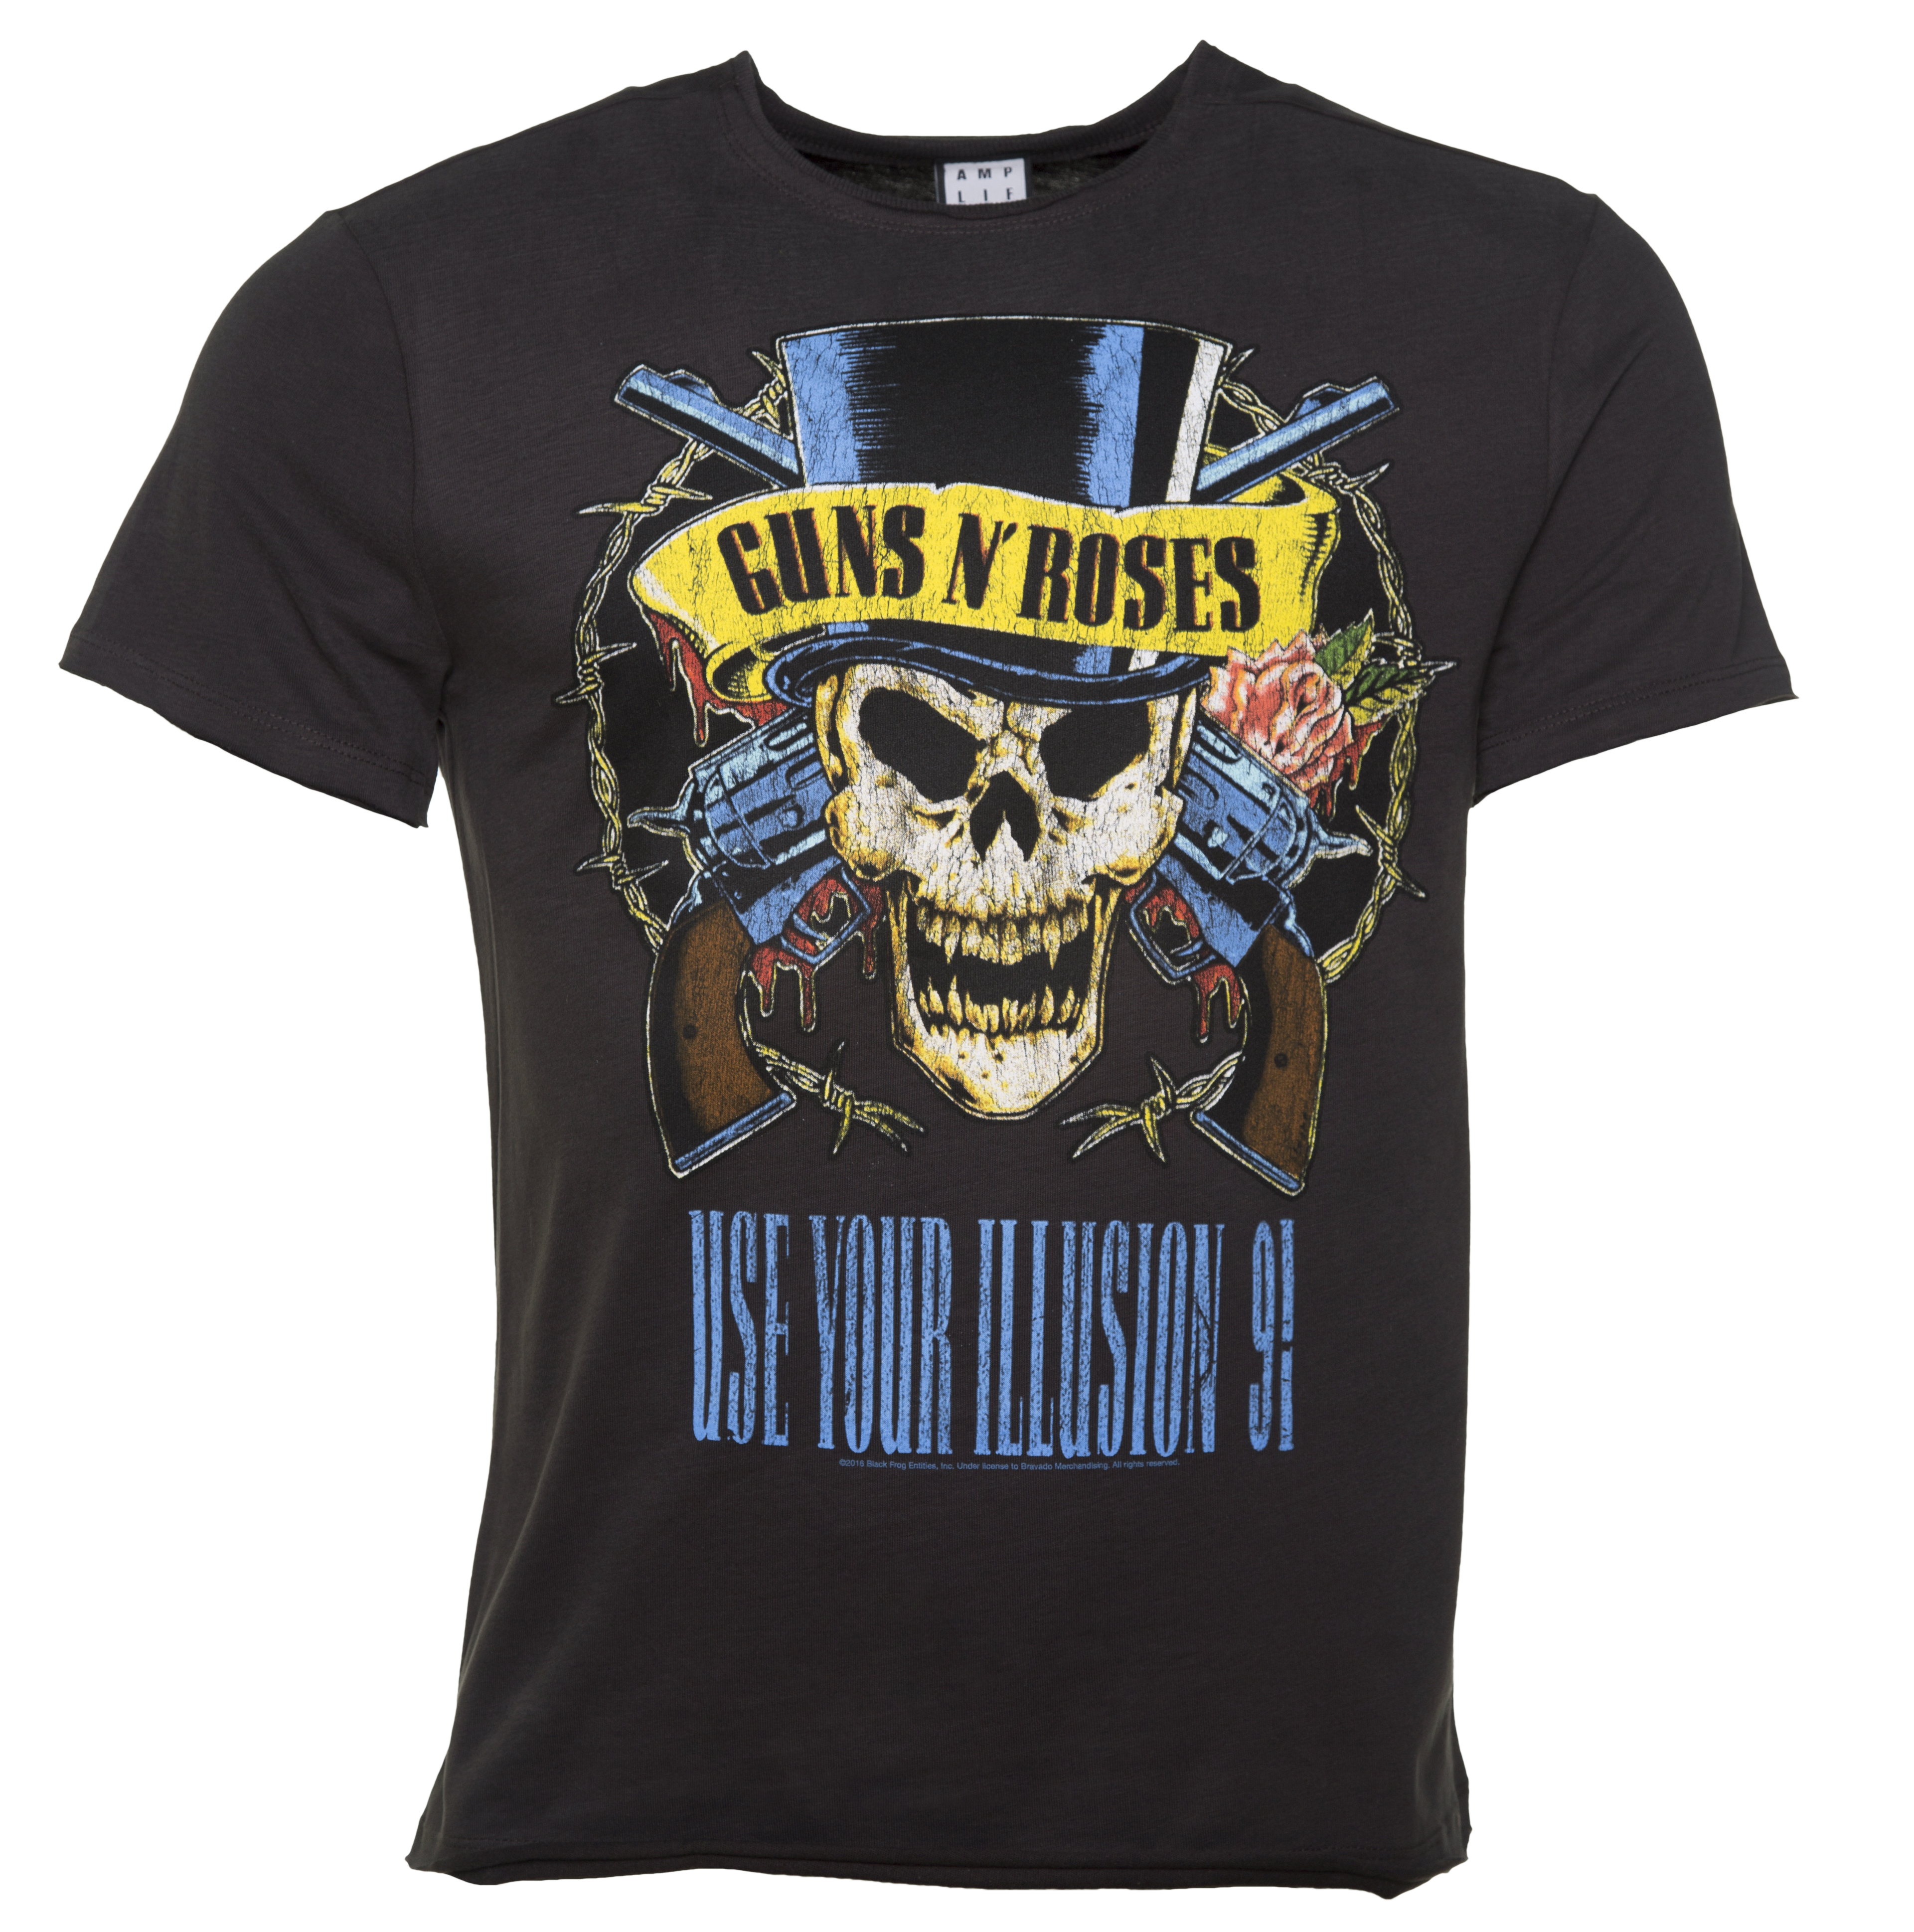 Guns N Roses Shirts : men 39 s charcoal guns n 39 roses use your illusion t shirt from amplified ~ Russianpoet.info Haus und Dekorationen